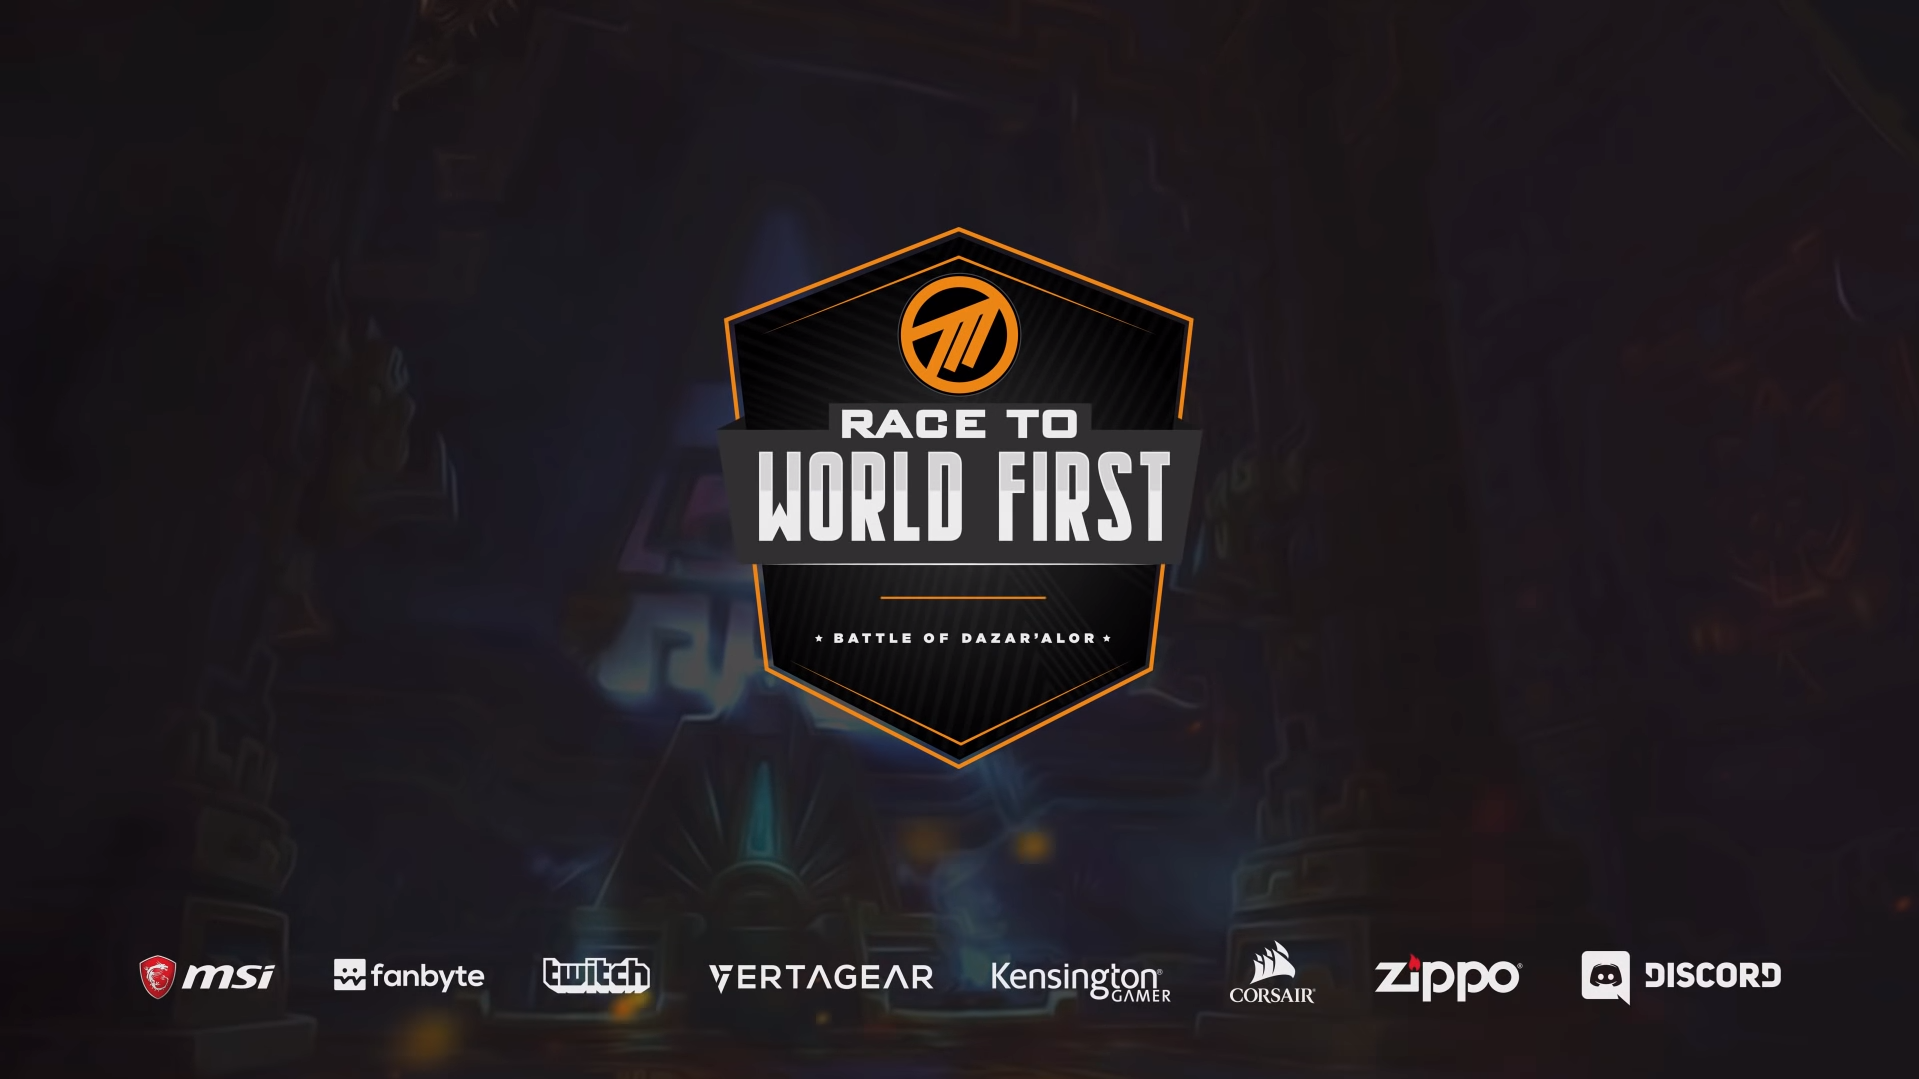 Method to Stream the World First Race for Battle of Dazar'alor